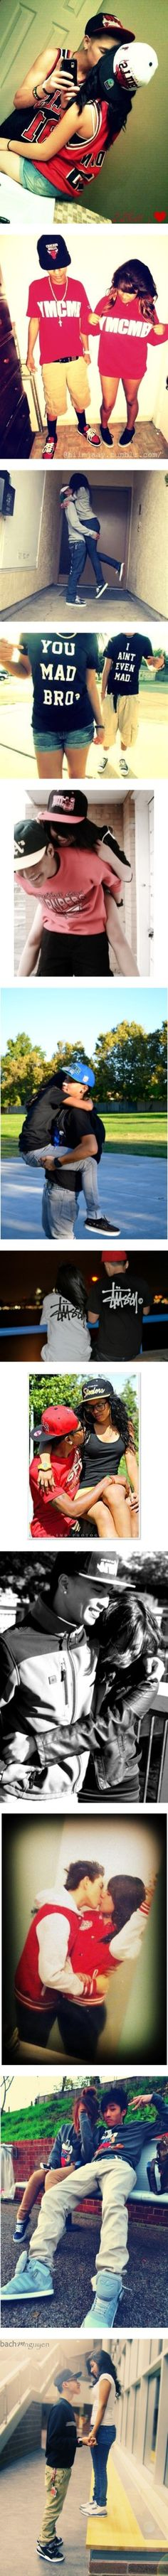 """Cute af couples :)"" by latina-swagg ❤ liked on Polyvore"